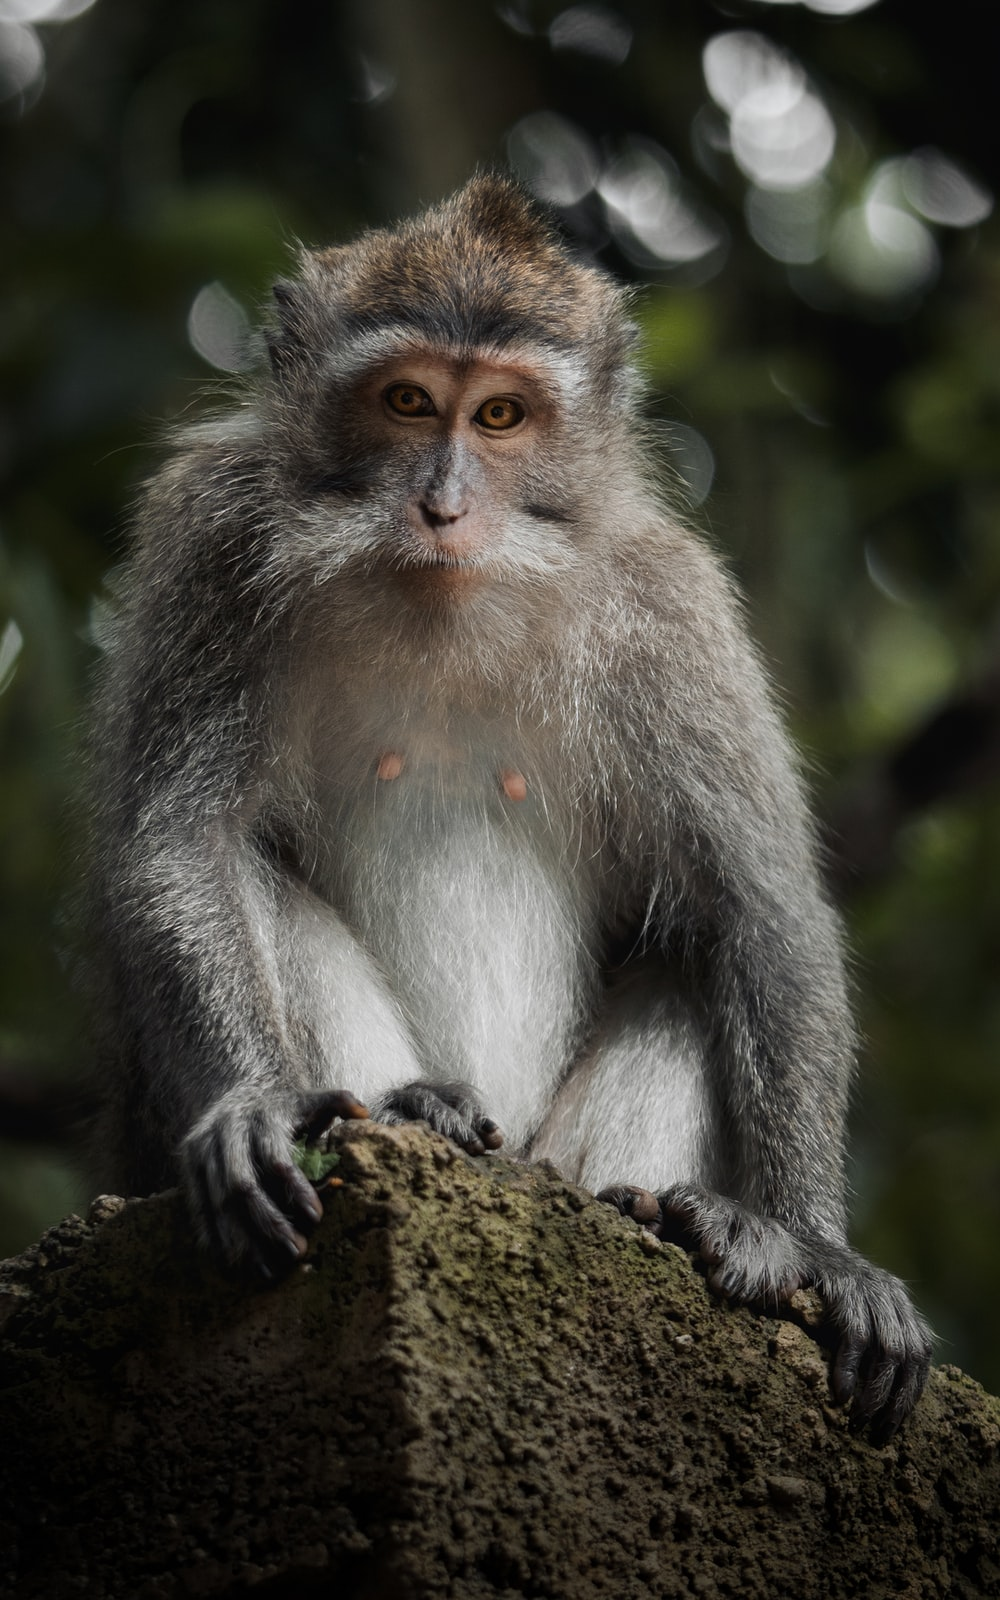 gray and white monkey on brown rock during daytime